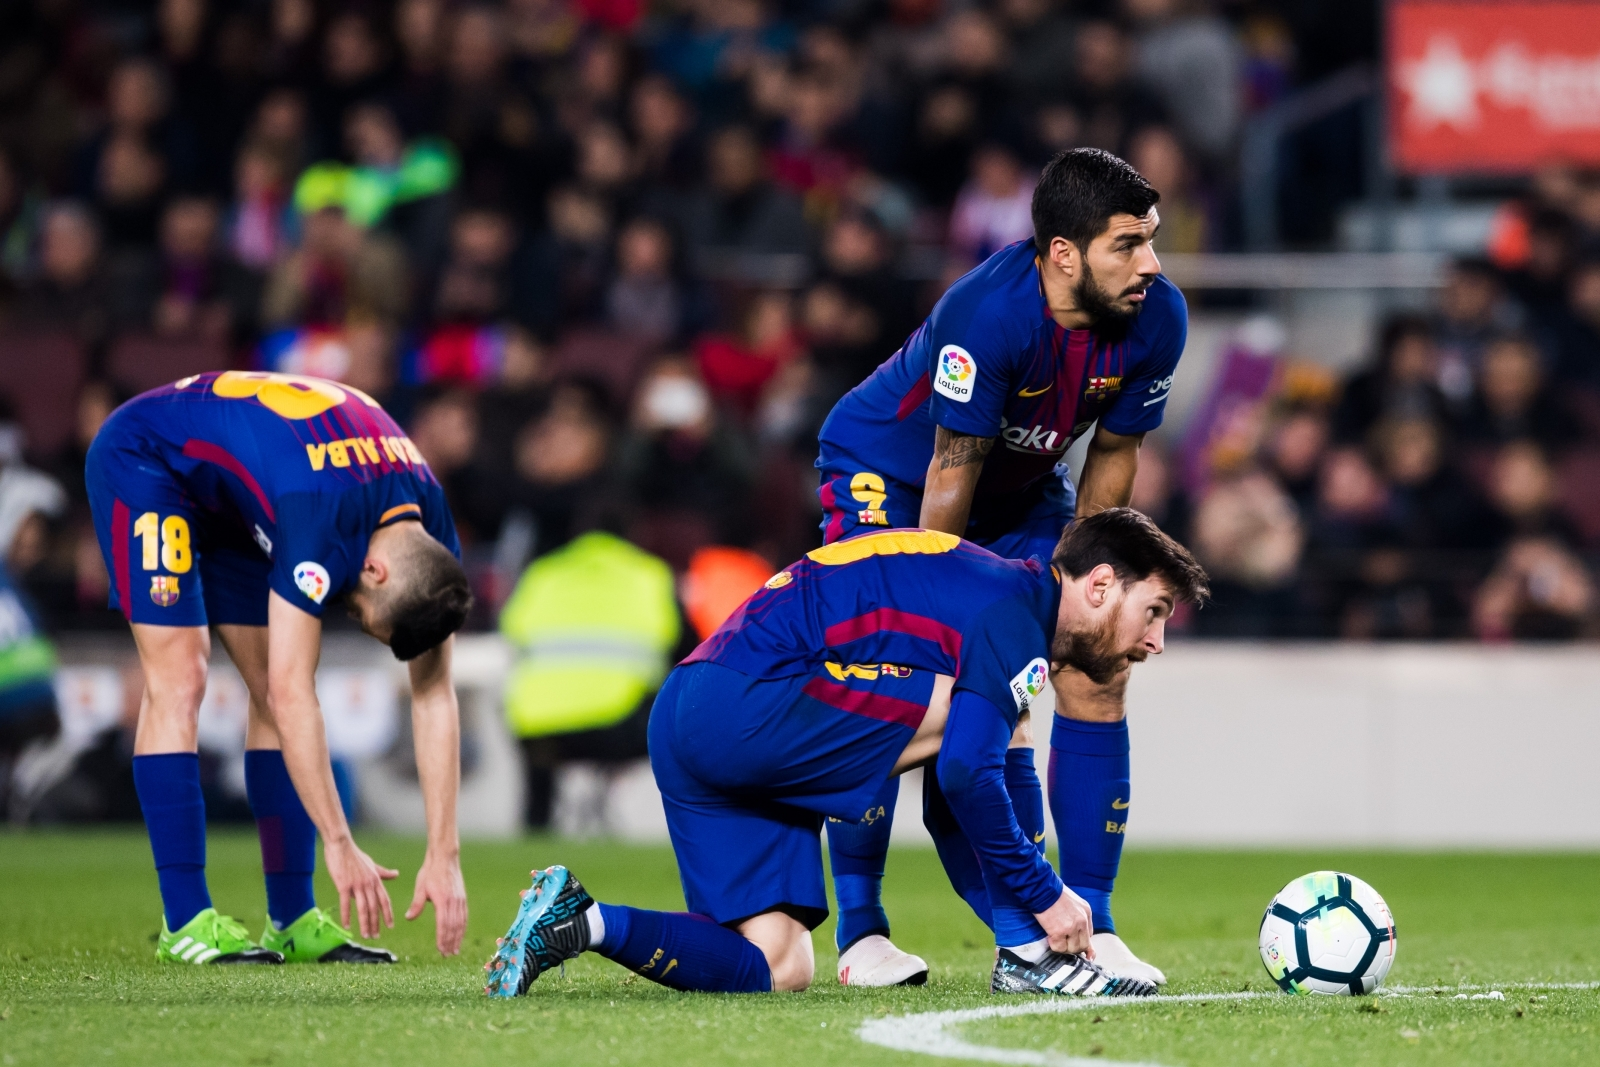 Spanish LaLiga Report: Barcelona v Atletico Madrid, 04 March 2018